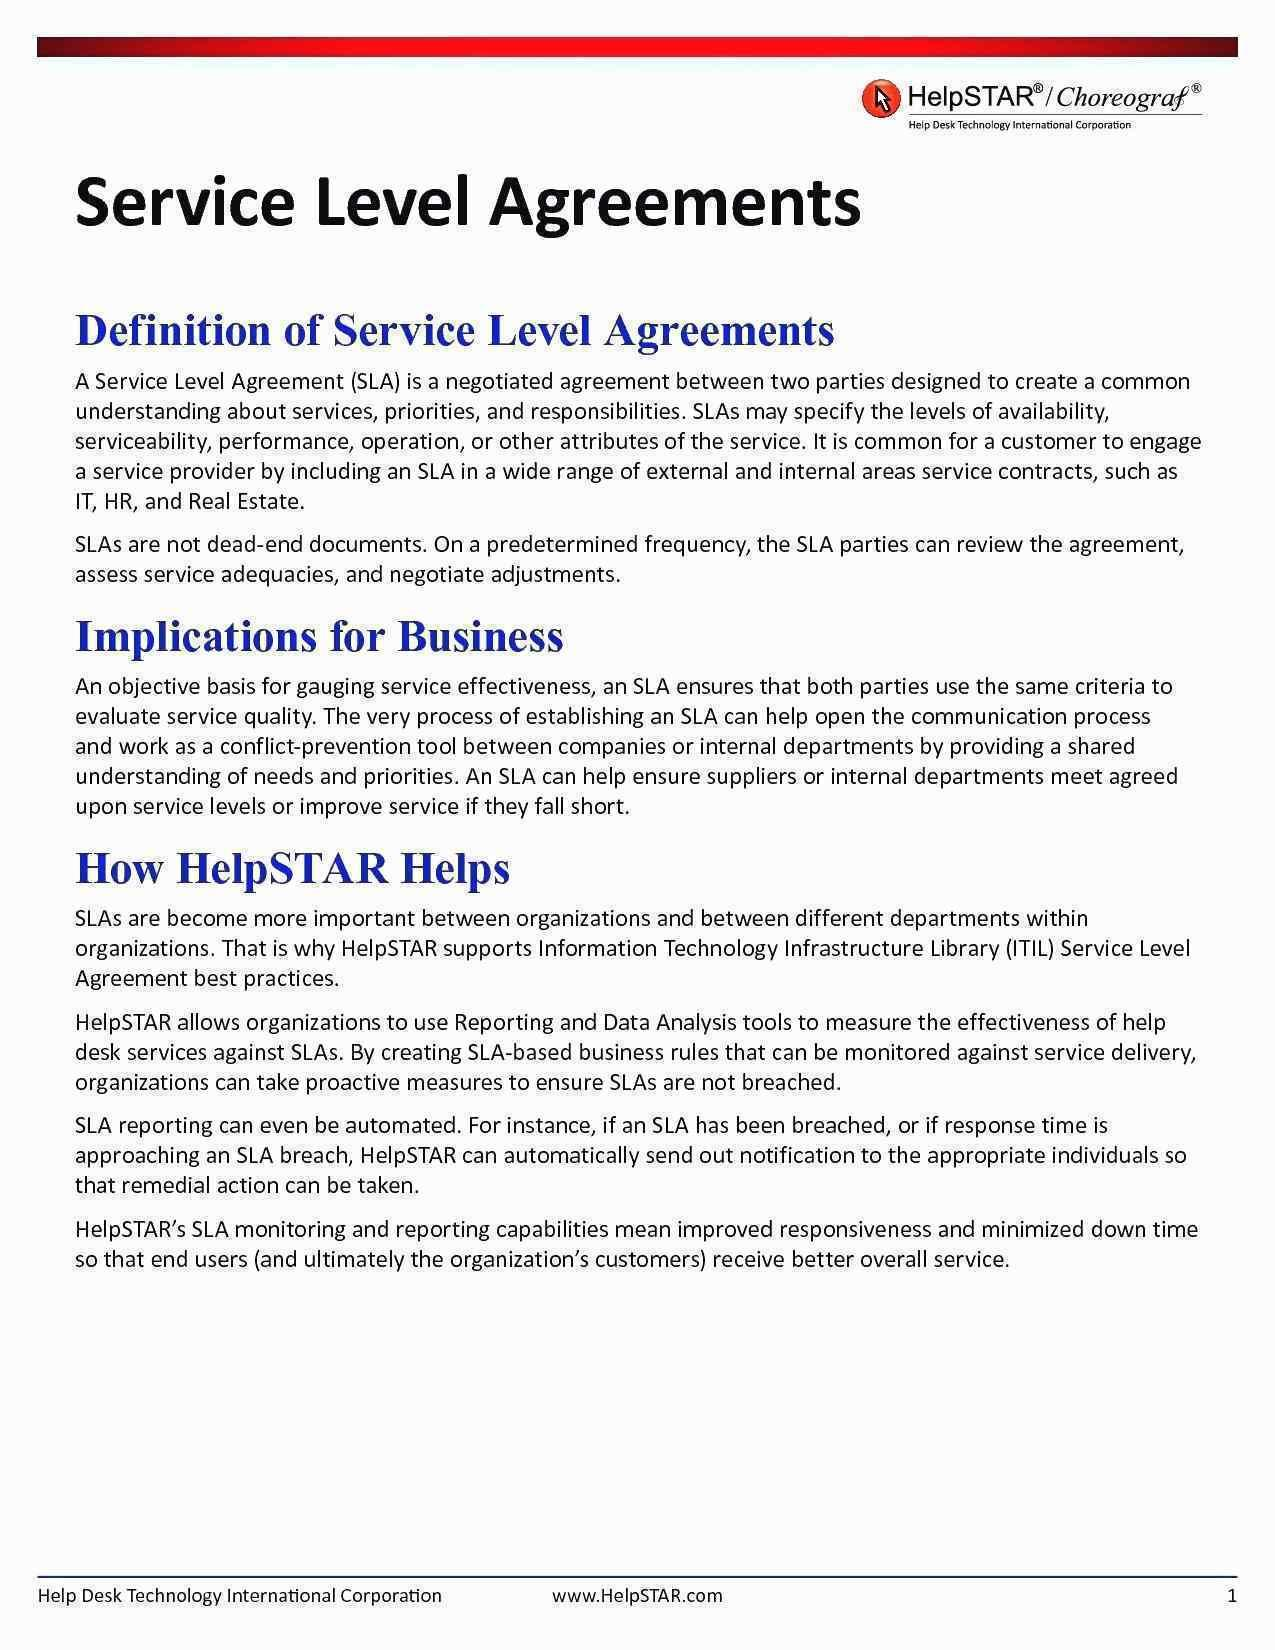 Help Desk Service Level Agreement Template